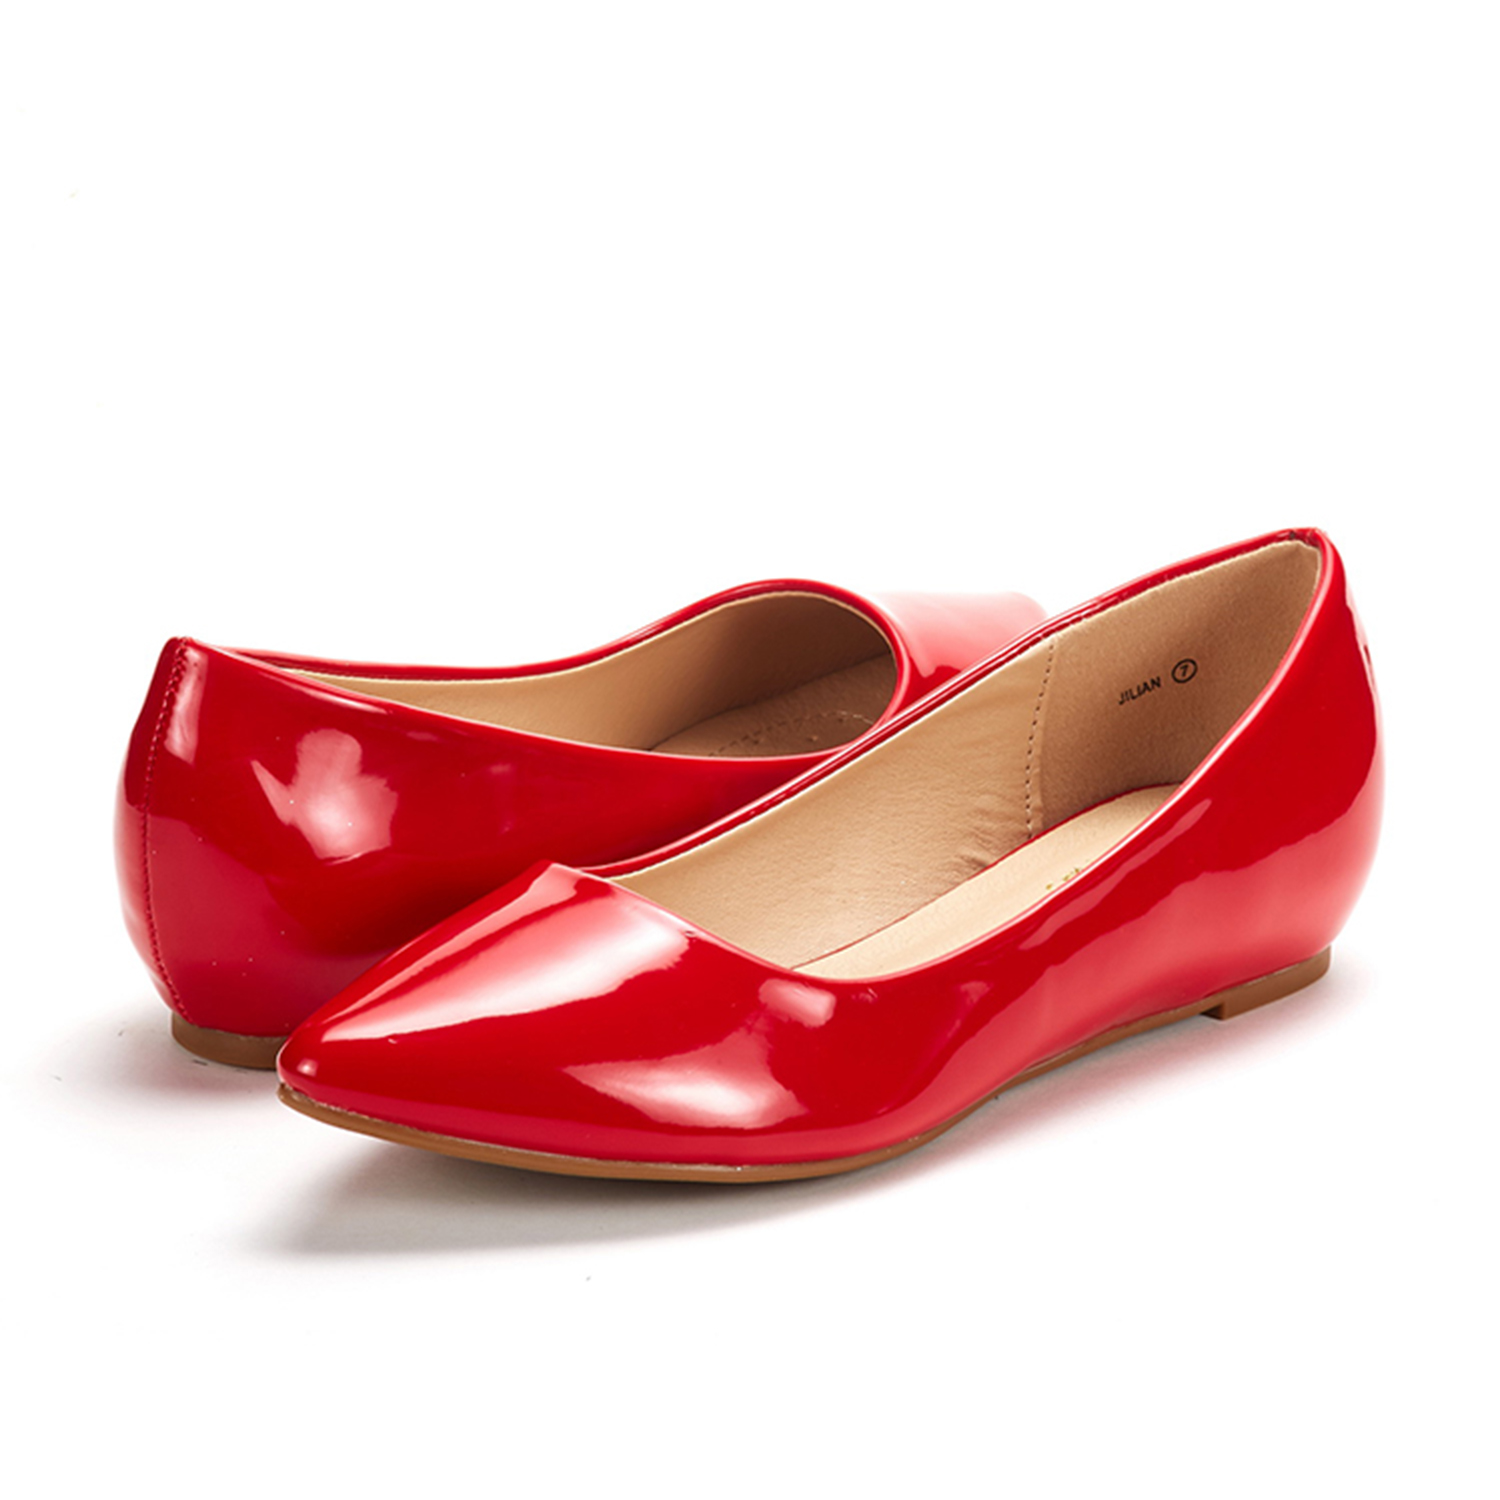 DREAM-PAIRS-Women-Low-Wedge-Flats-Ladies-Pointed-Toe-Slip-On-Comfort-Flat-Shoes thumbnail 35